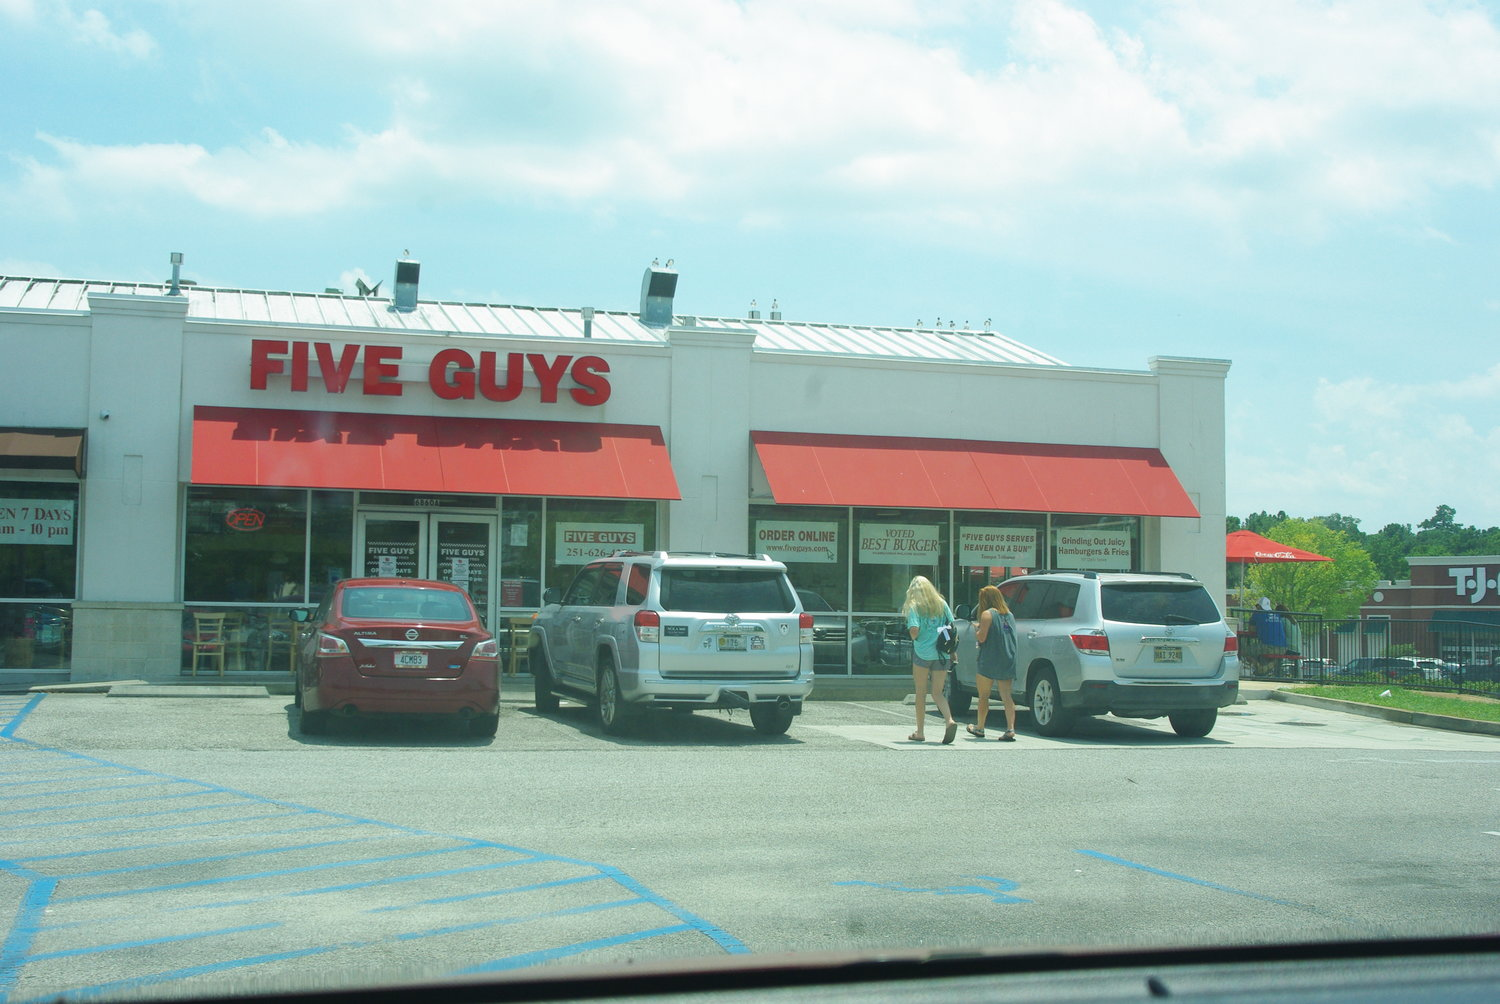 Several employees of the Five Guys restaurant were fired or suspended after refusing to serve police earlier this month.